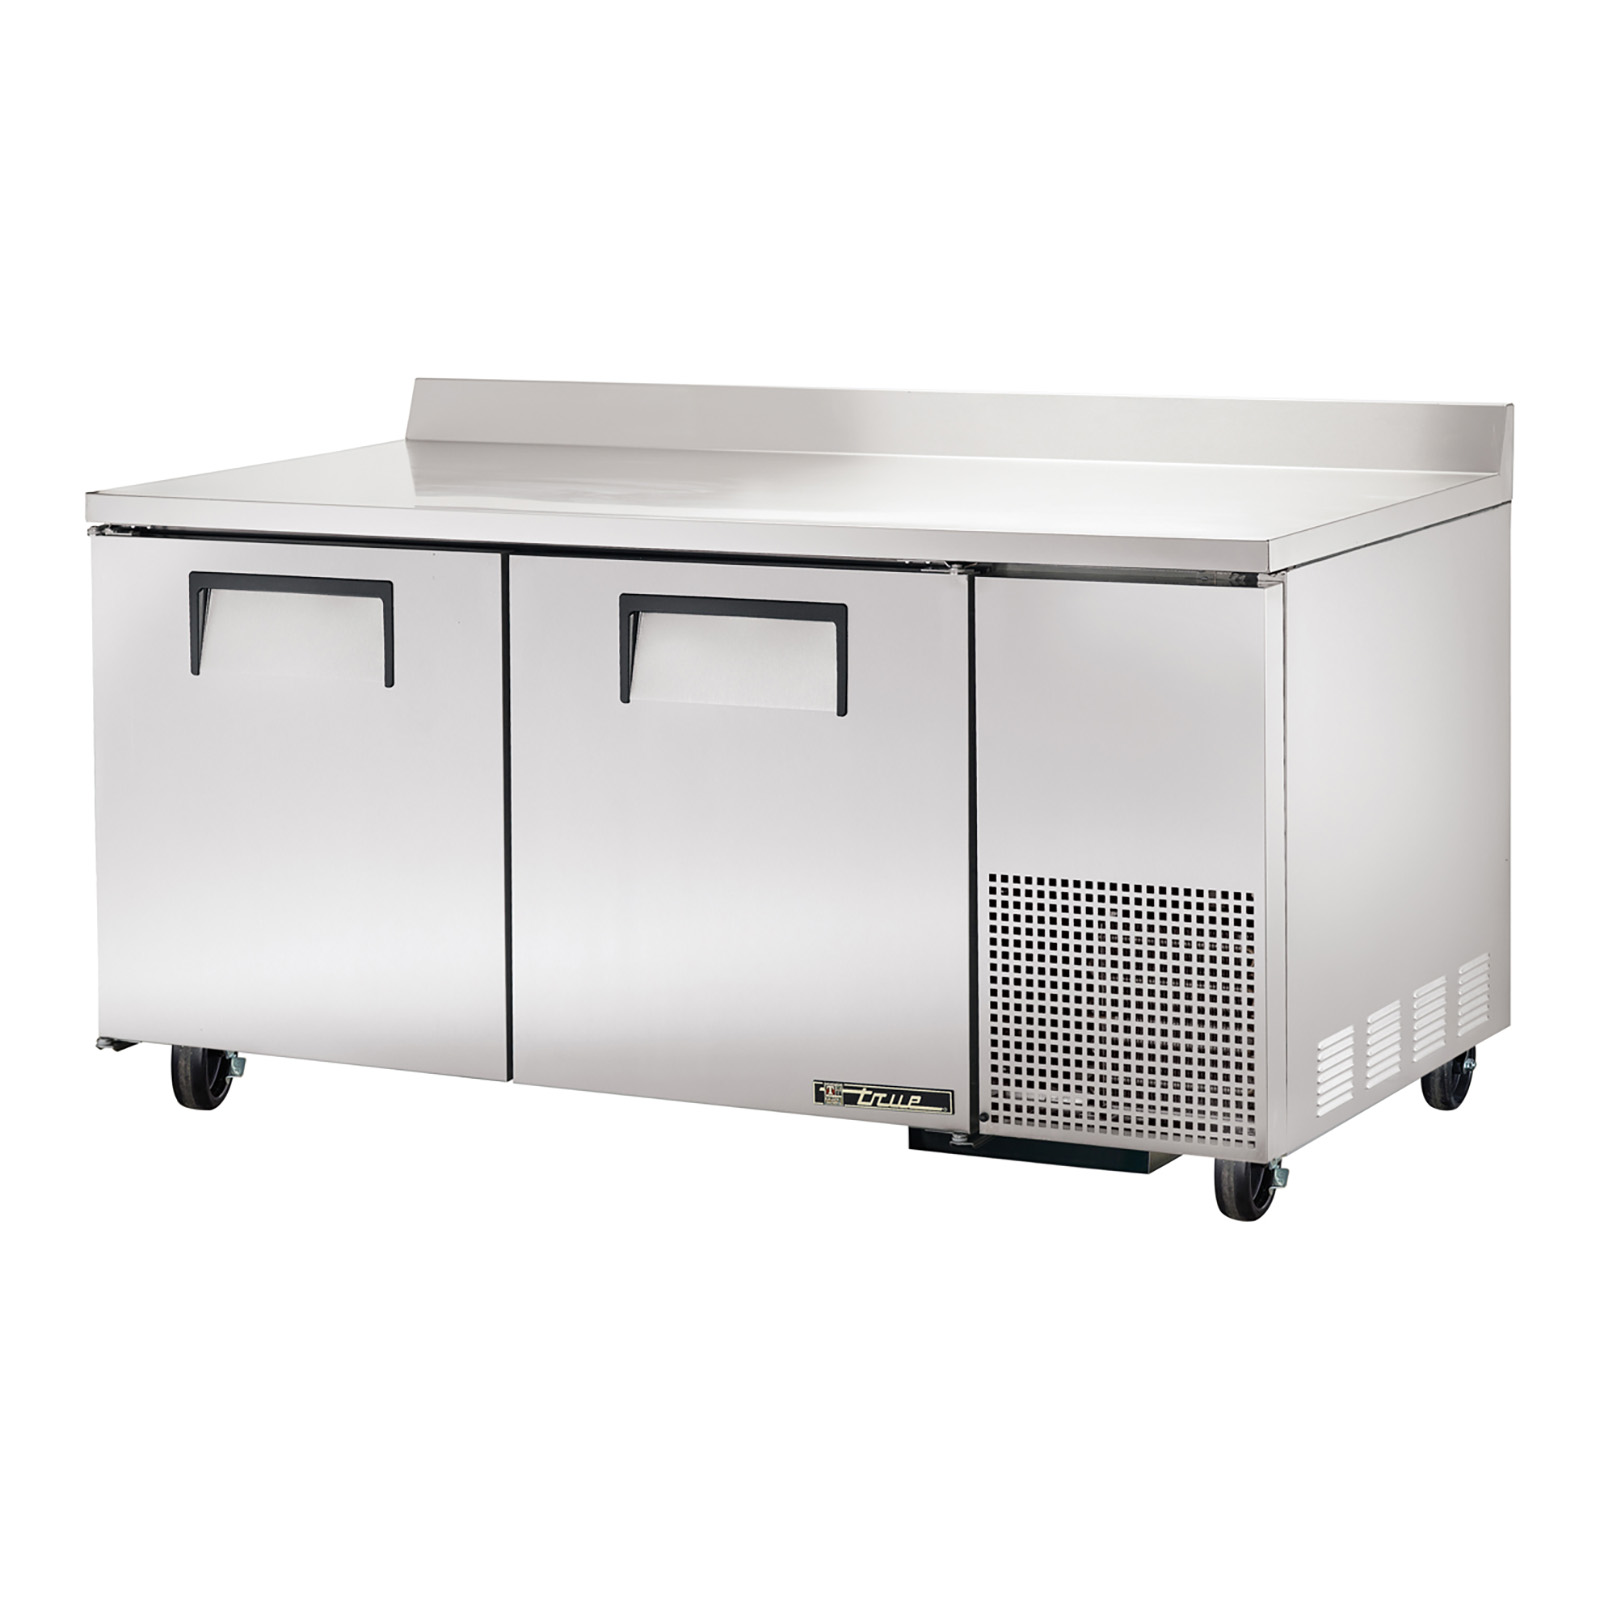 TWT-67 True - Deep Work Top Refrigerator two-section